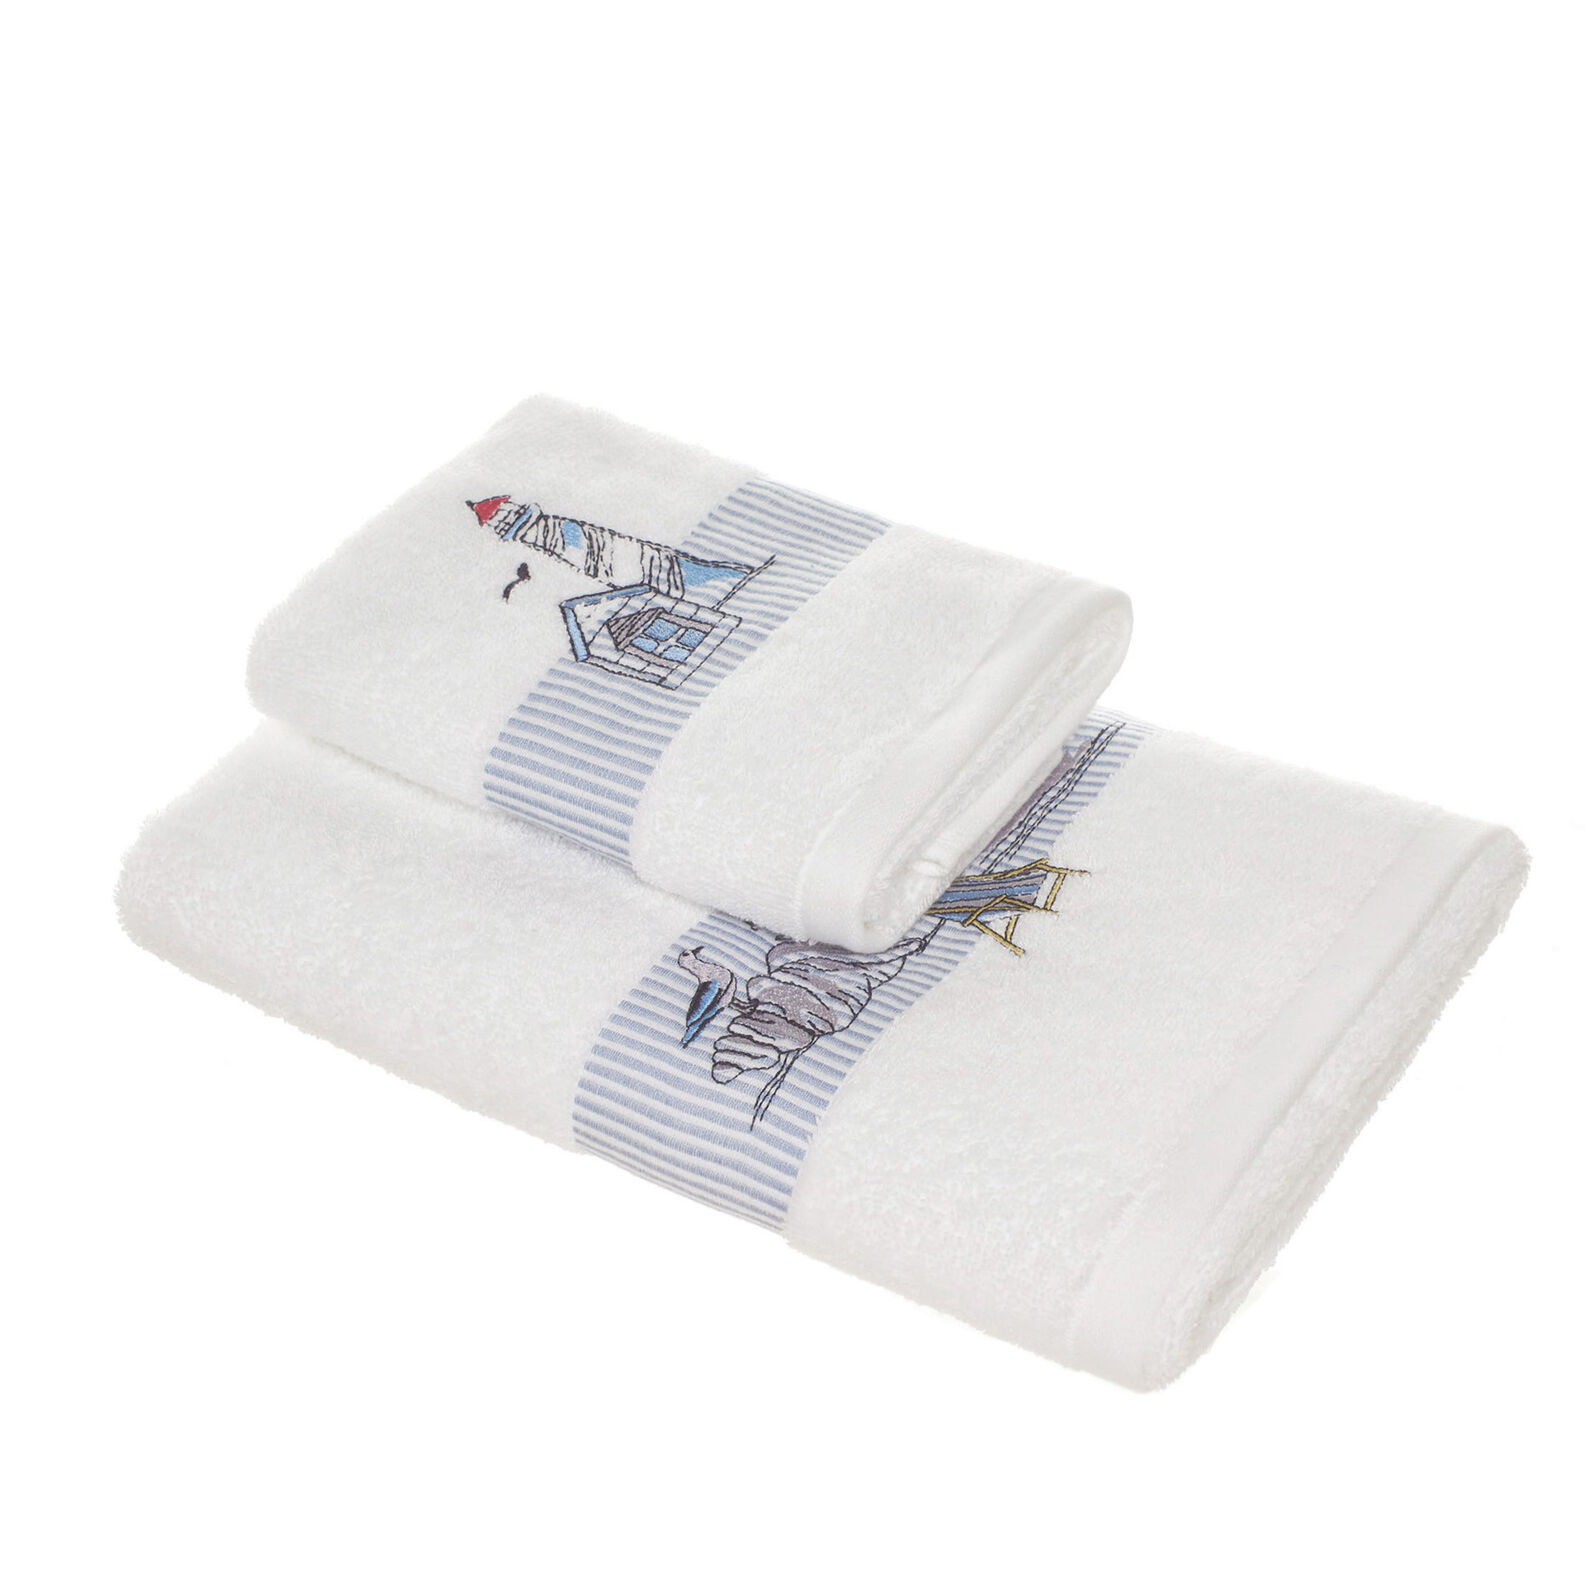 100% cotton towel with navy embroidery